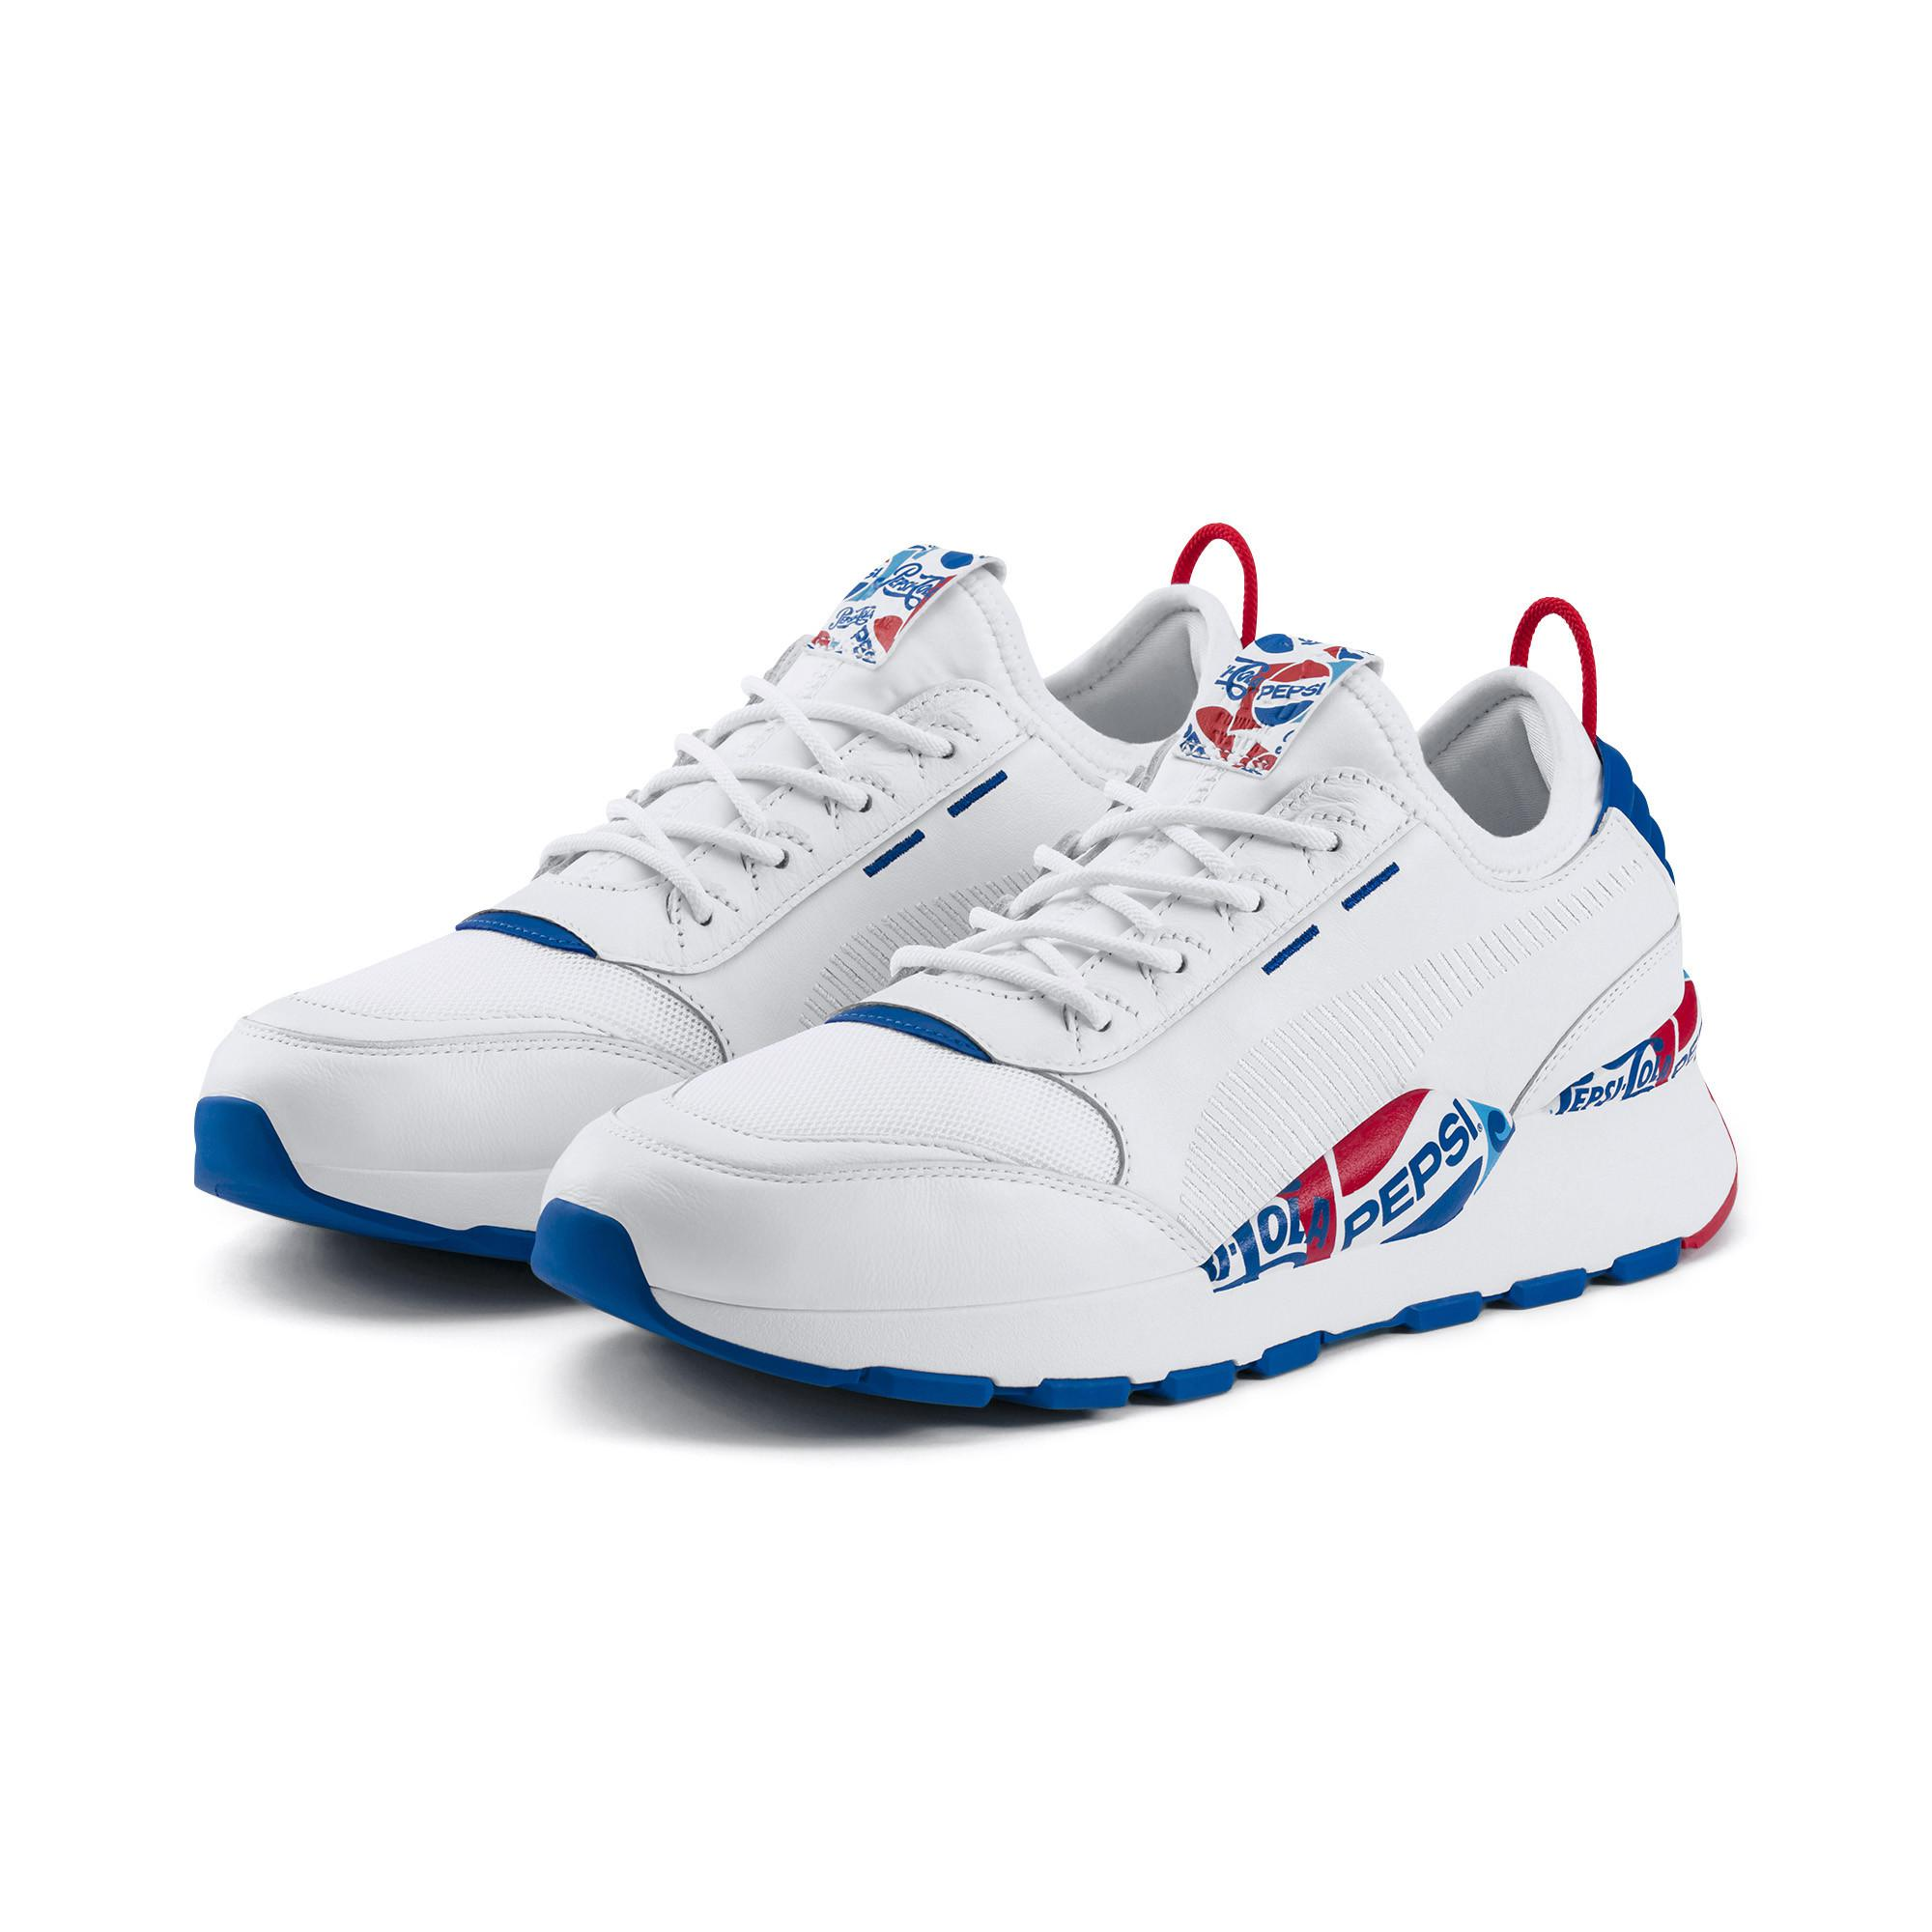 30ba4994fbd Lyst - PUMA X Pepsi Rs-0 Men s Sneakers in Blue for Men